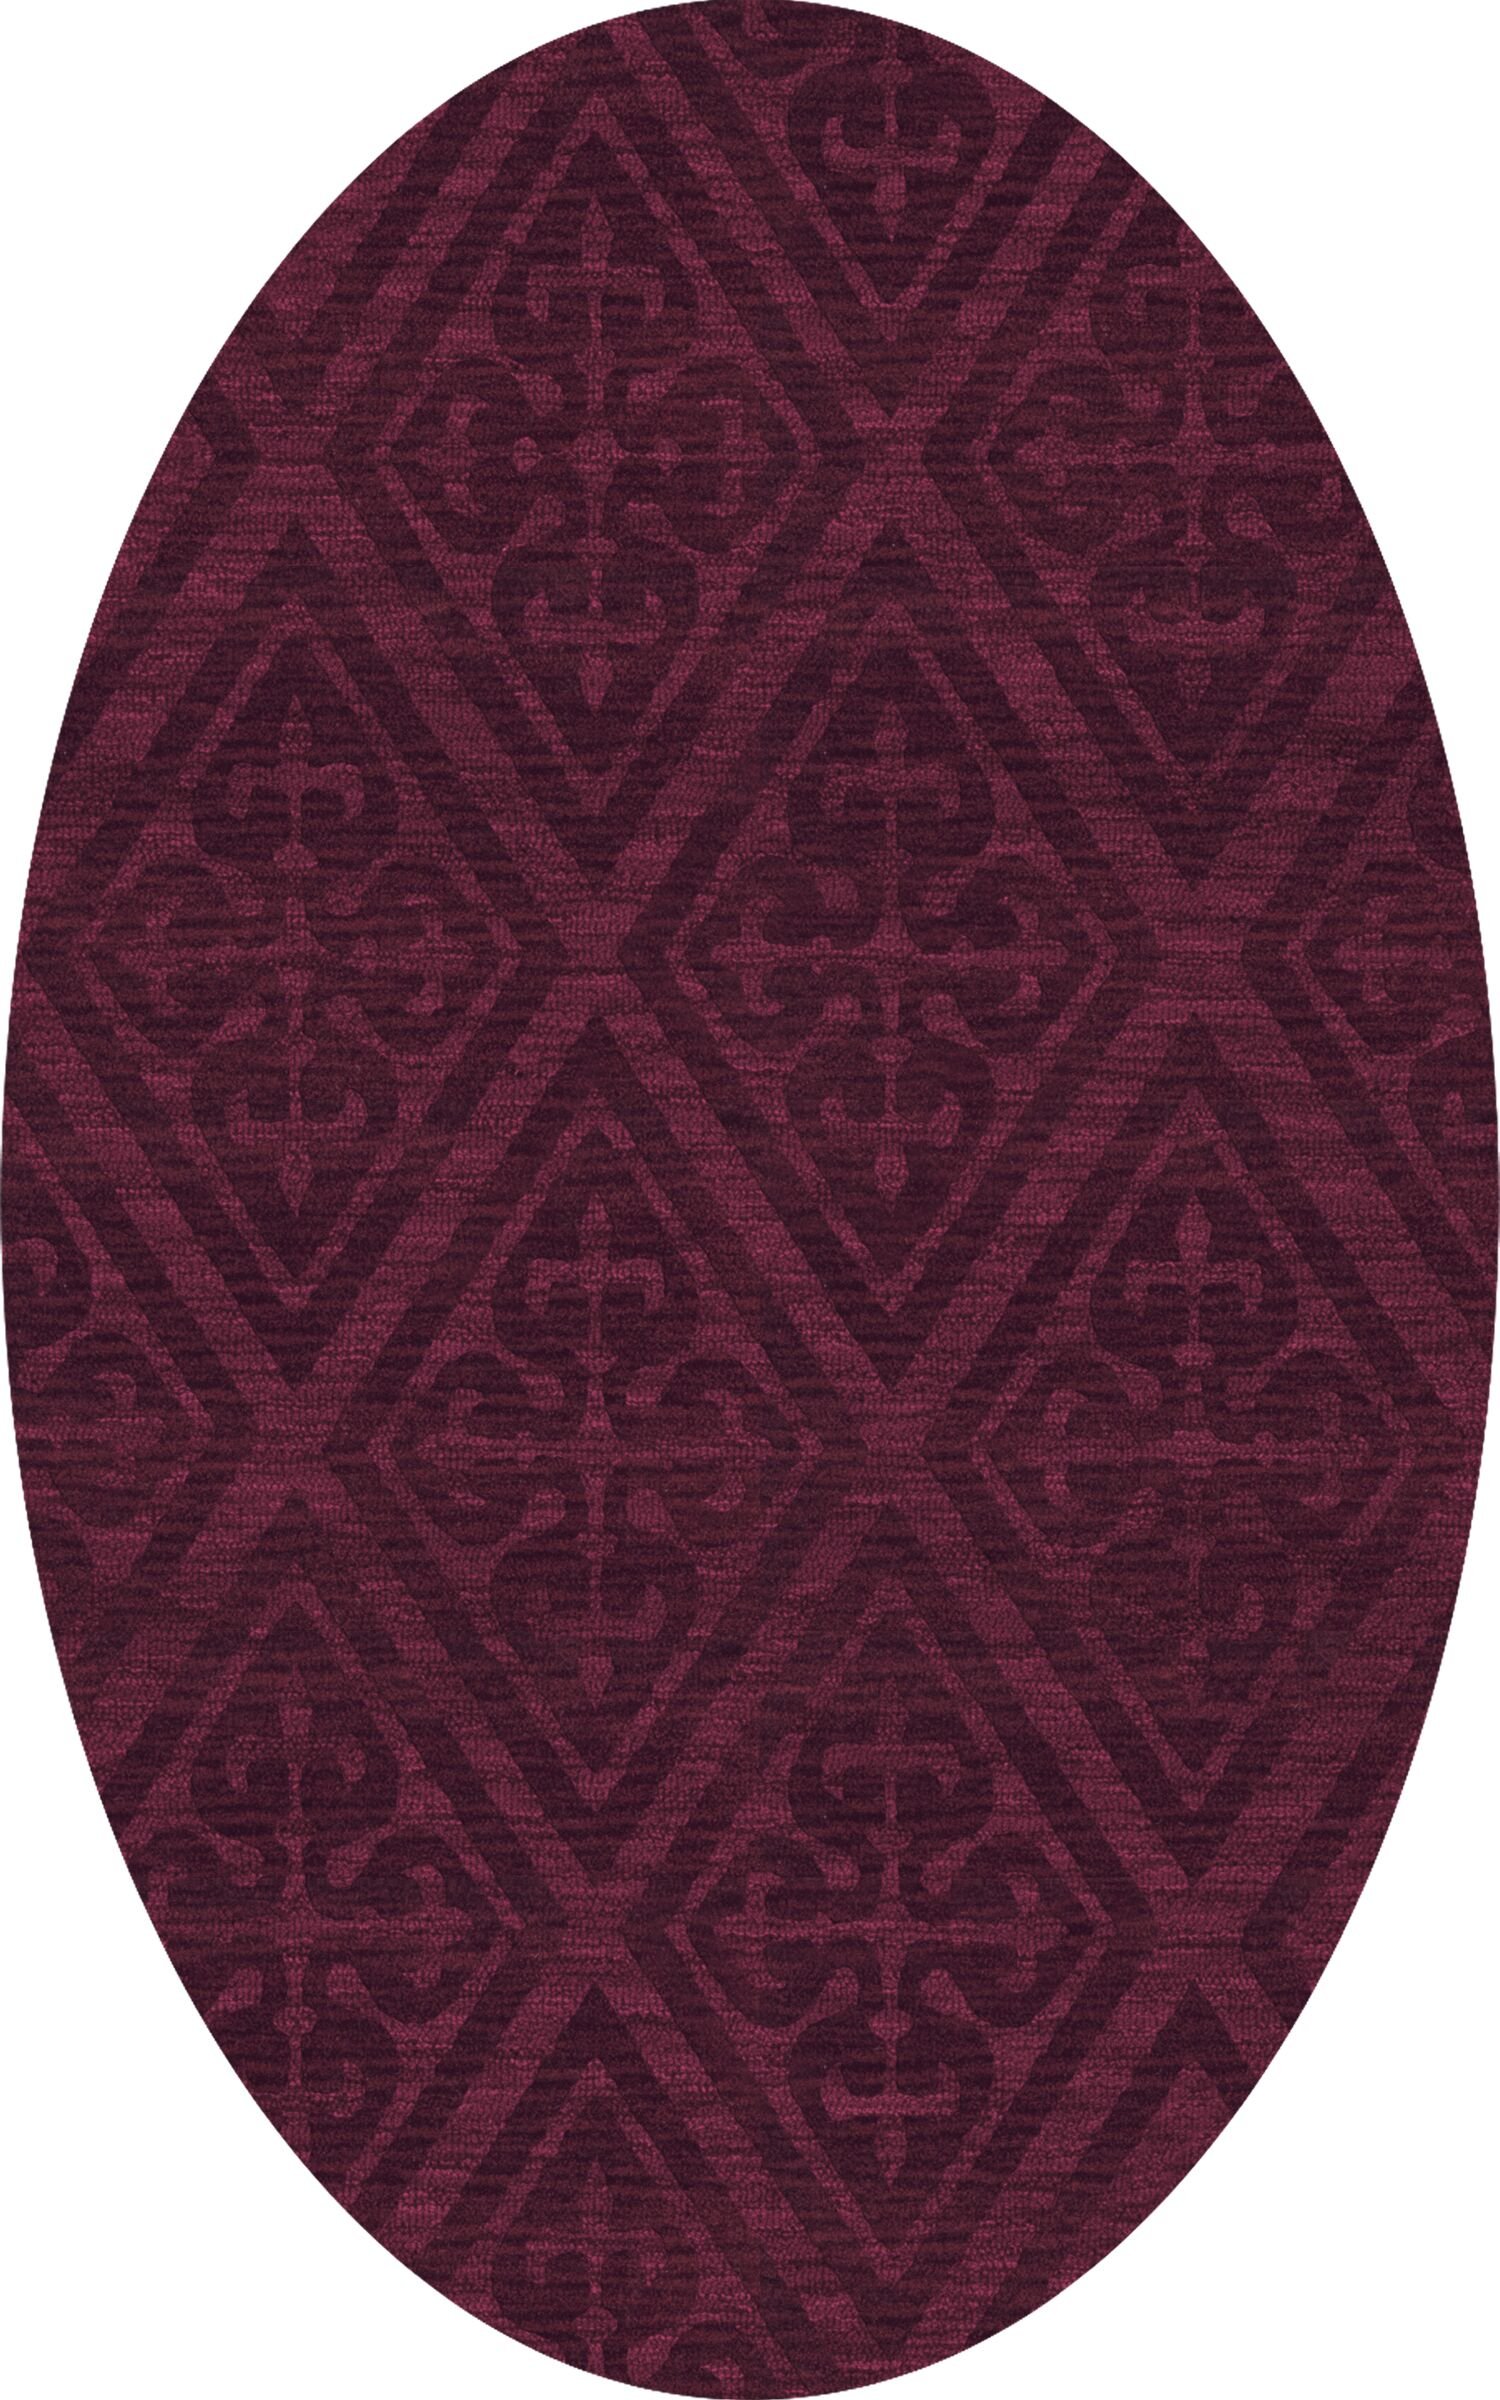 Bella Machine Woven Wool Red Area Rug Rug Size: Oval 4' x 6'